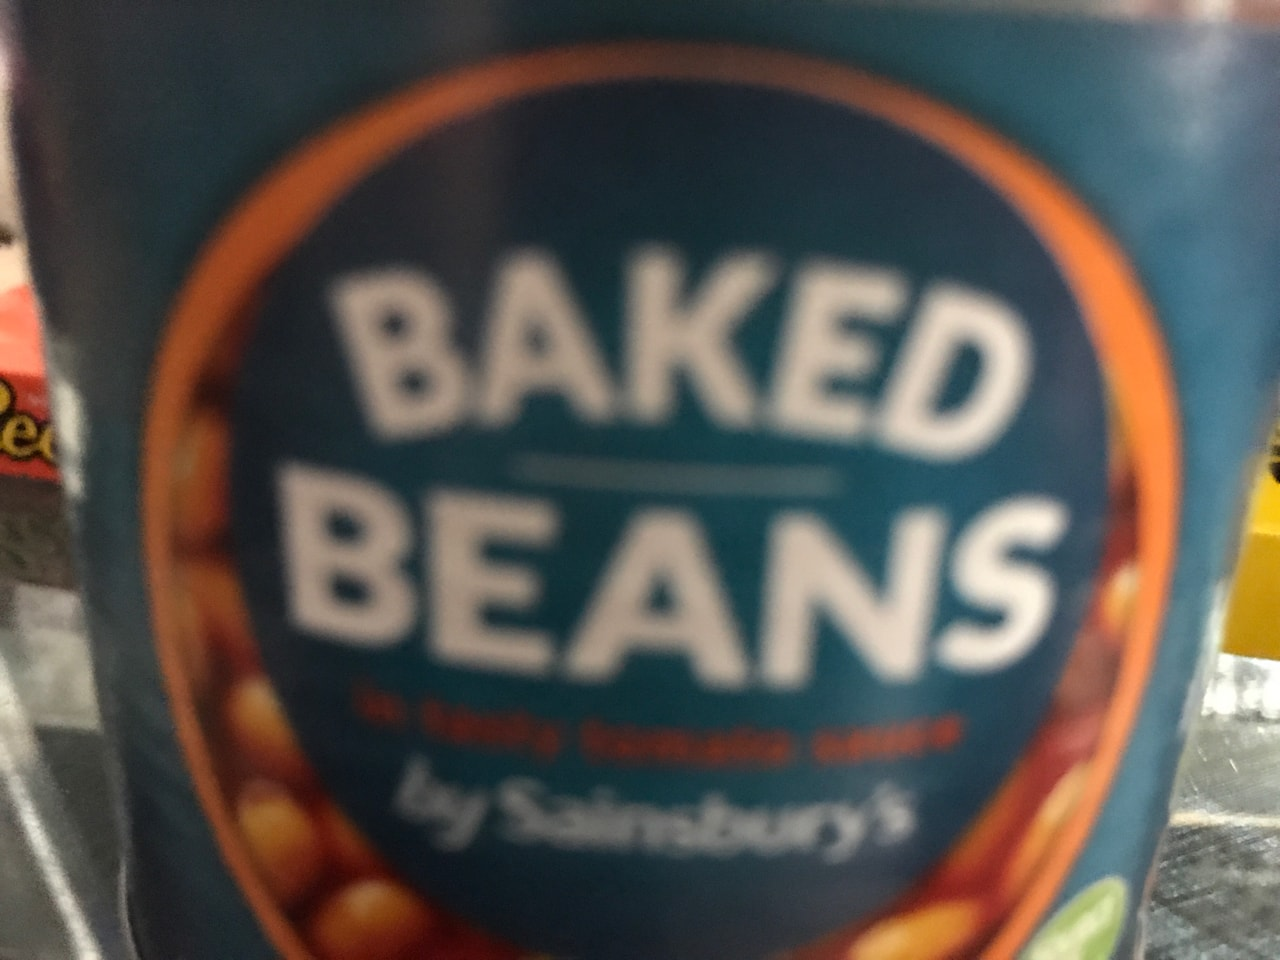 Baked beans( unopened) - collected from student halls